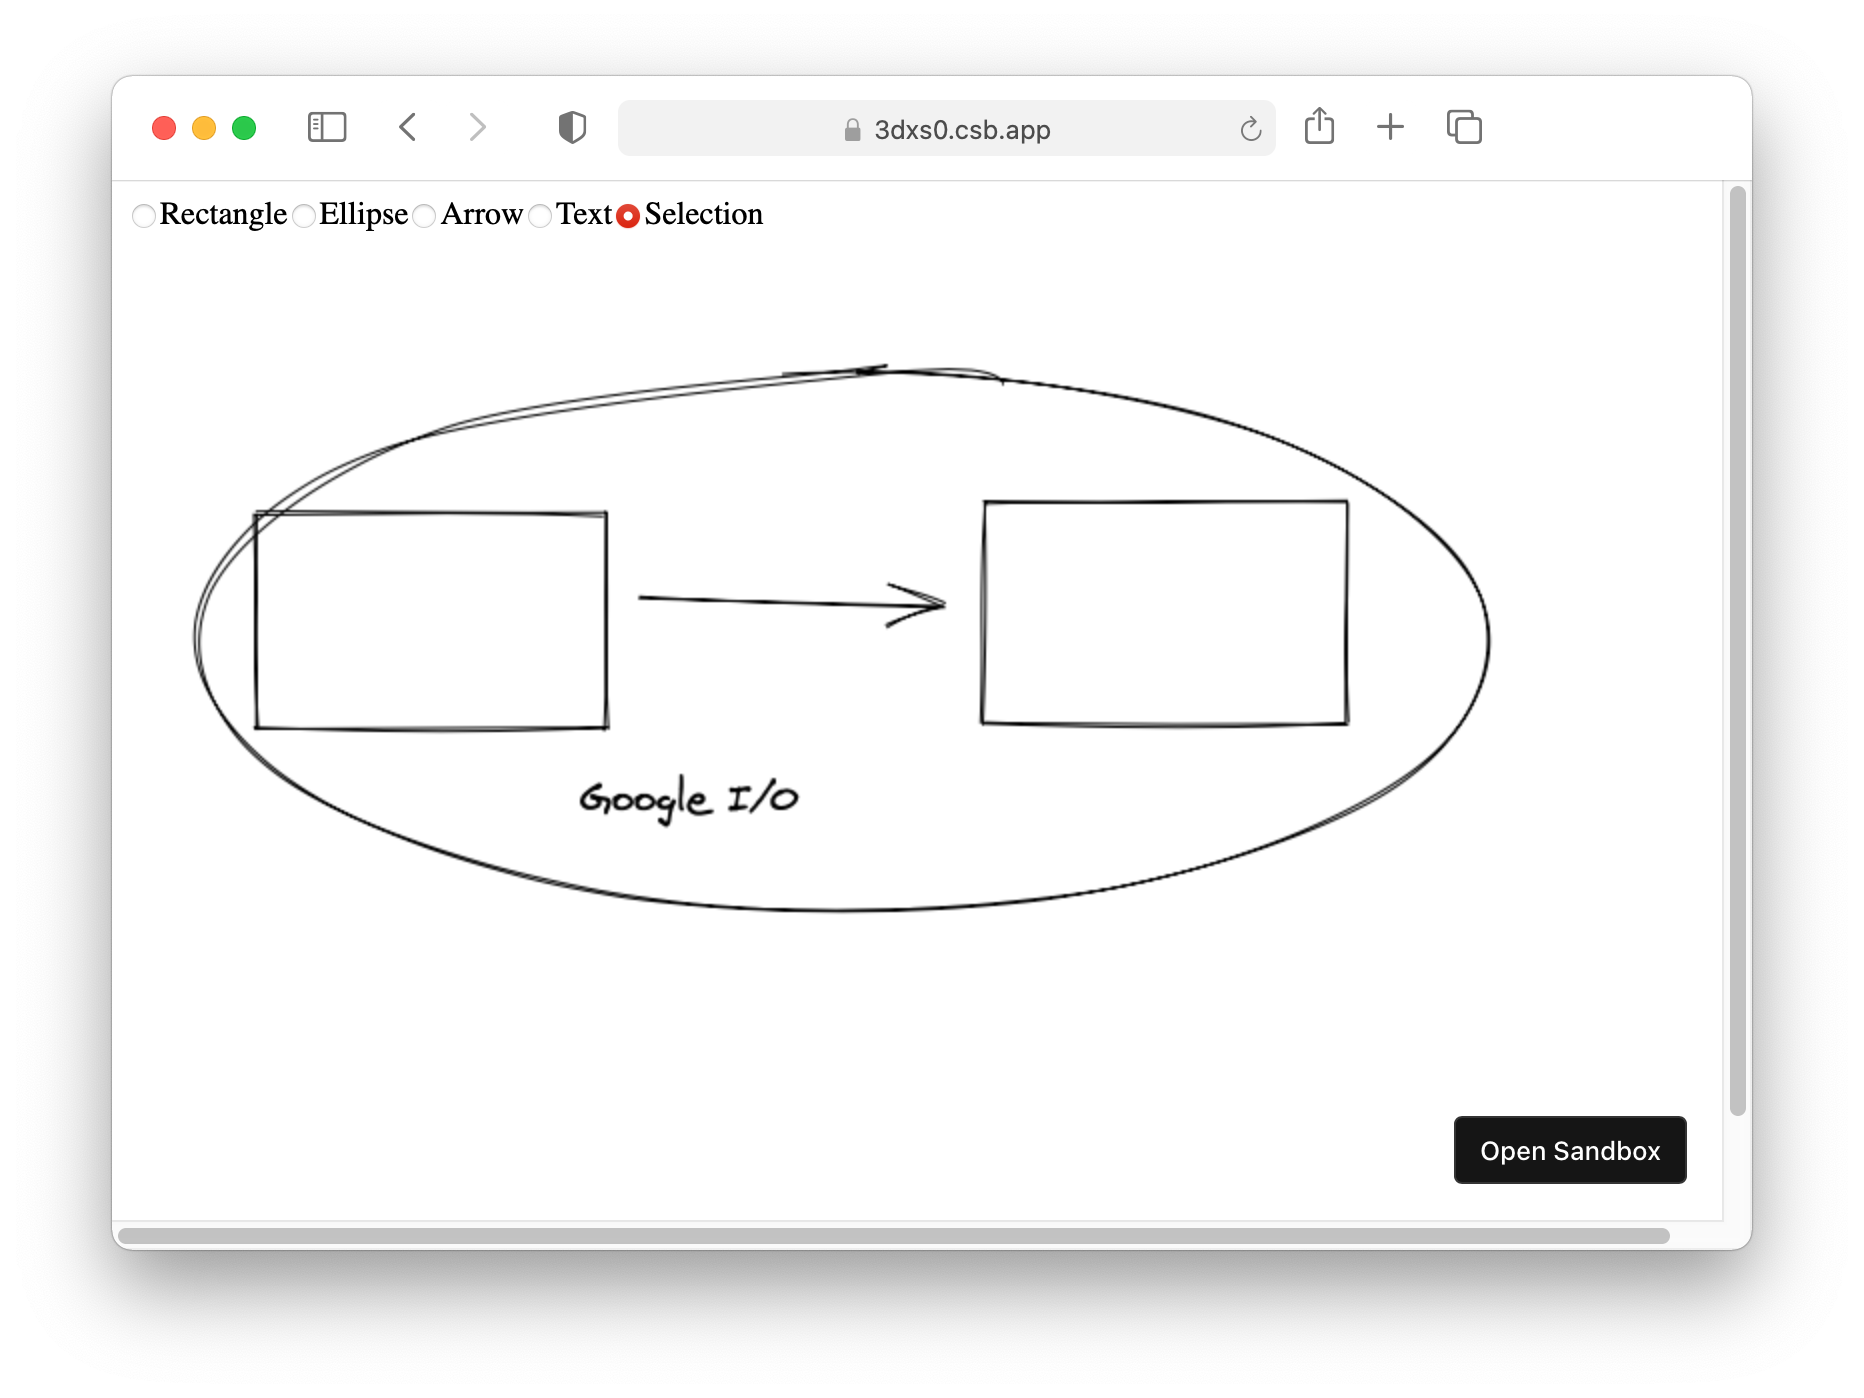 Screenshot of the Excalidraw prototype application showing that it supported rectangles, arrows, ellipses, and text.